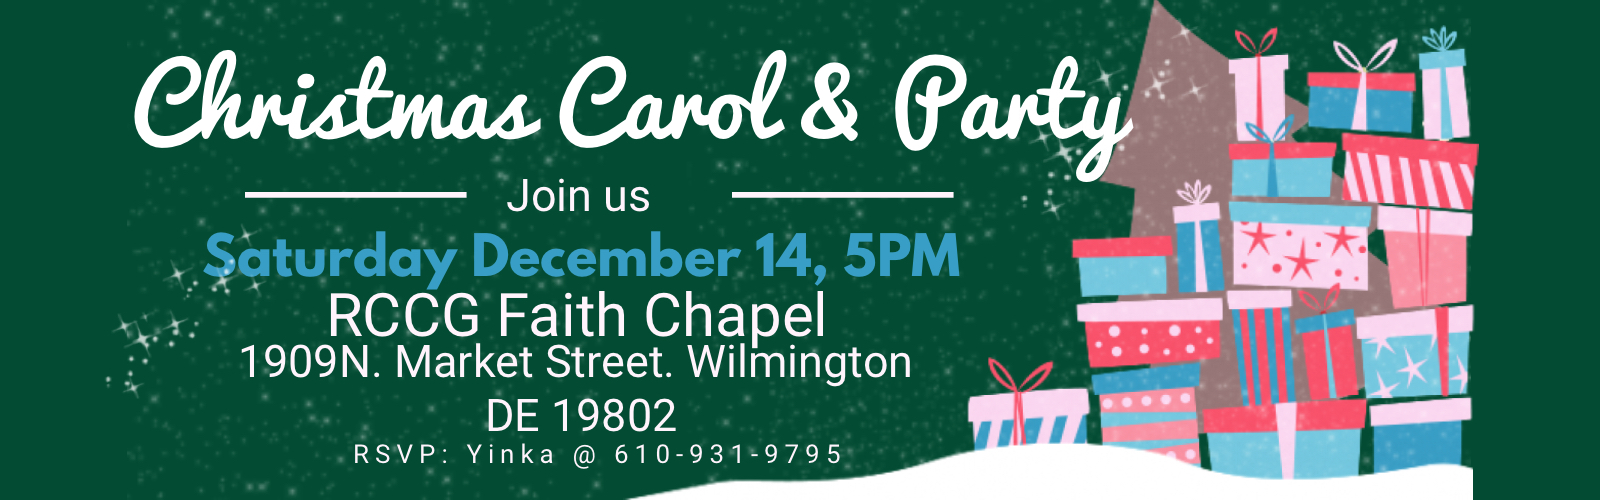 Christmas Carol and Party 2019.